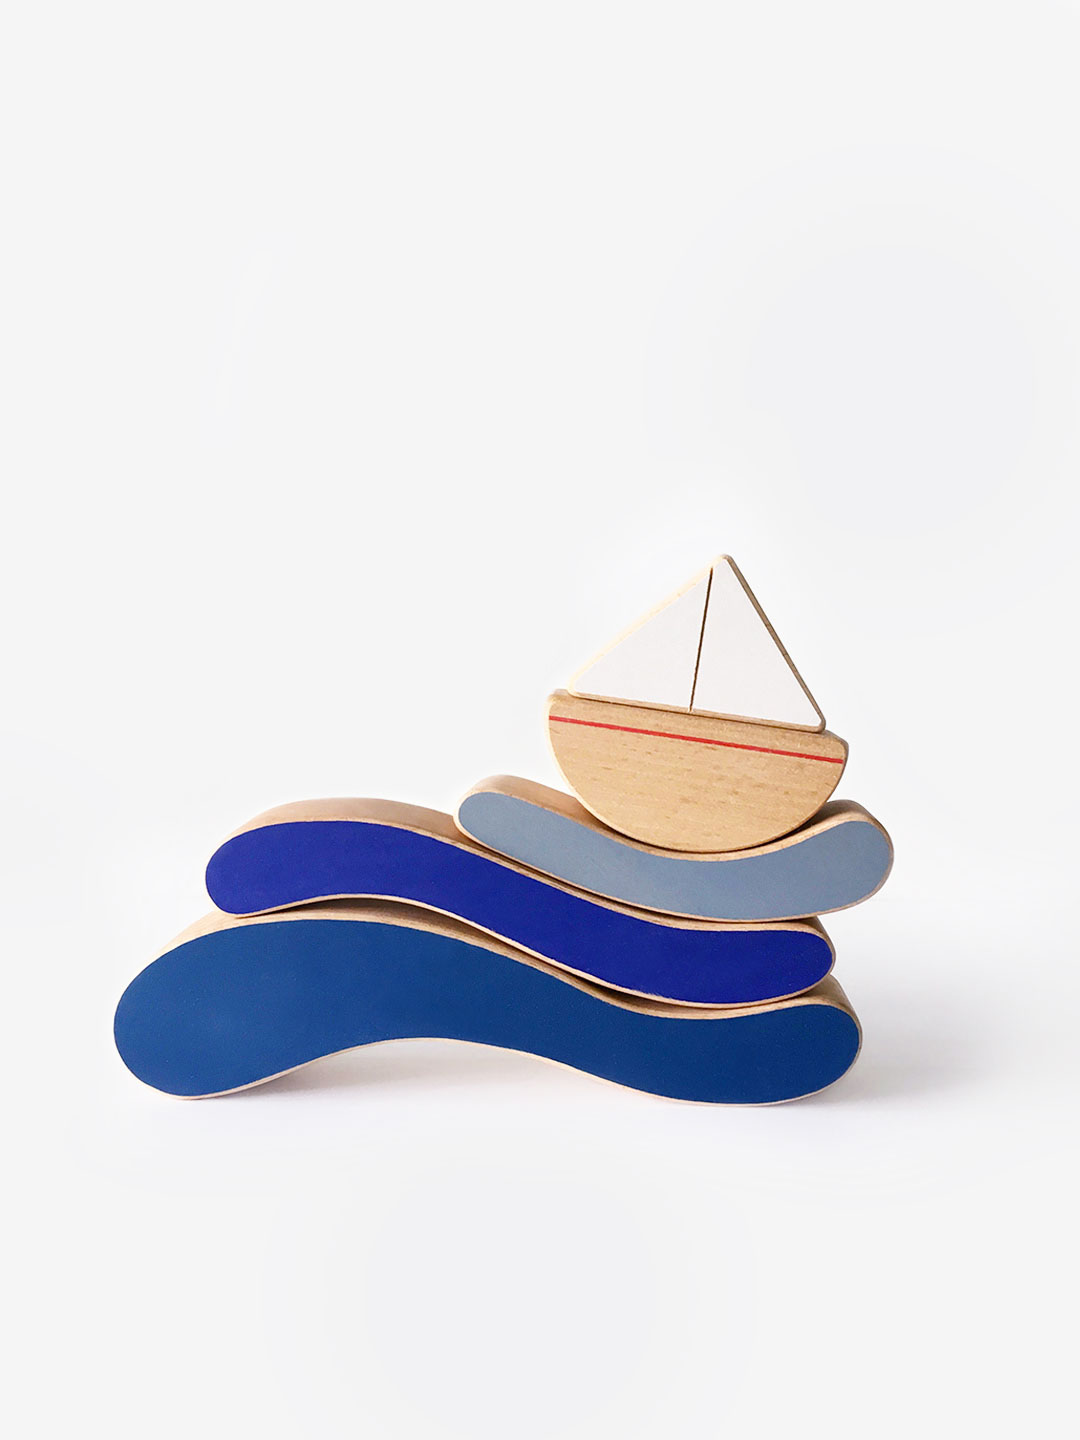 Boat & Waves Stacking Toy